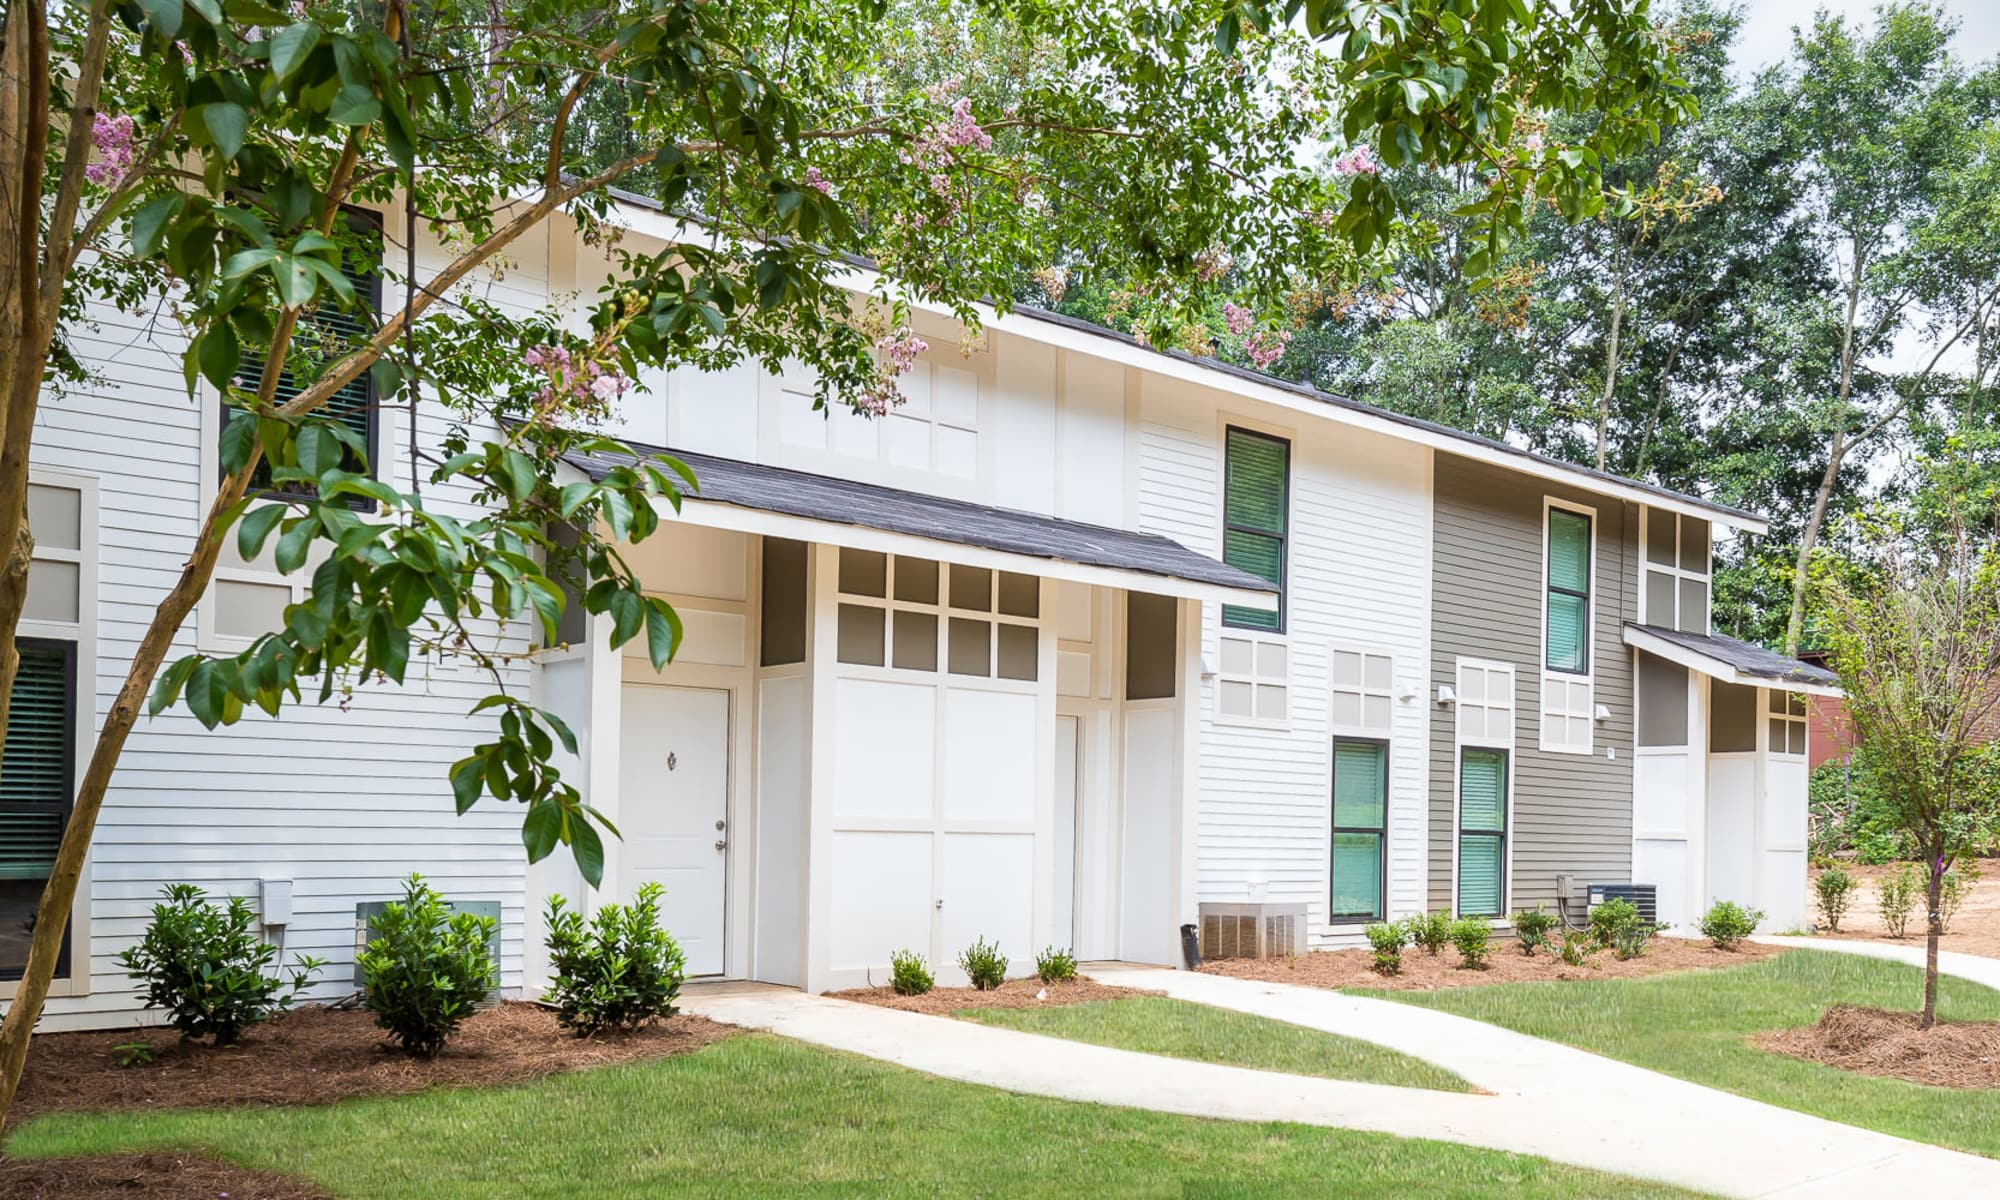 Apartments in Smyrna, GA